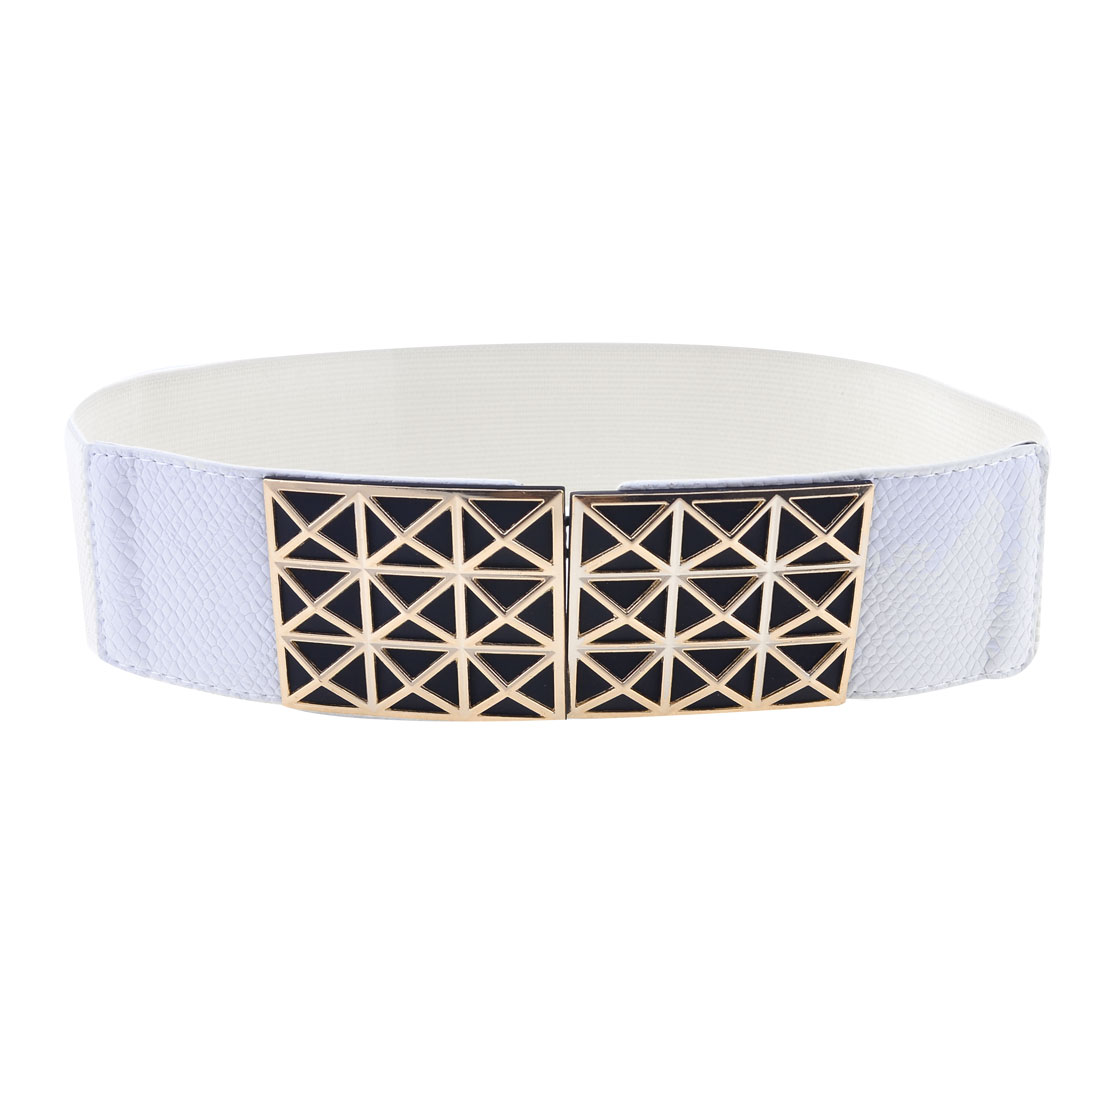 Women Faceted Square Shape Interlock Buckle 6cm Width Elastic White Waist Belt